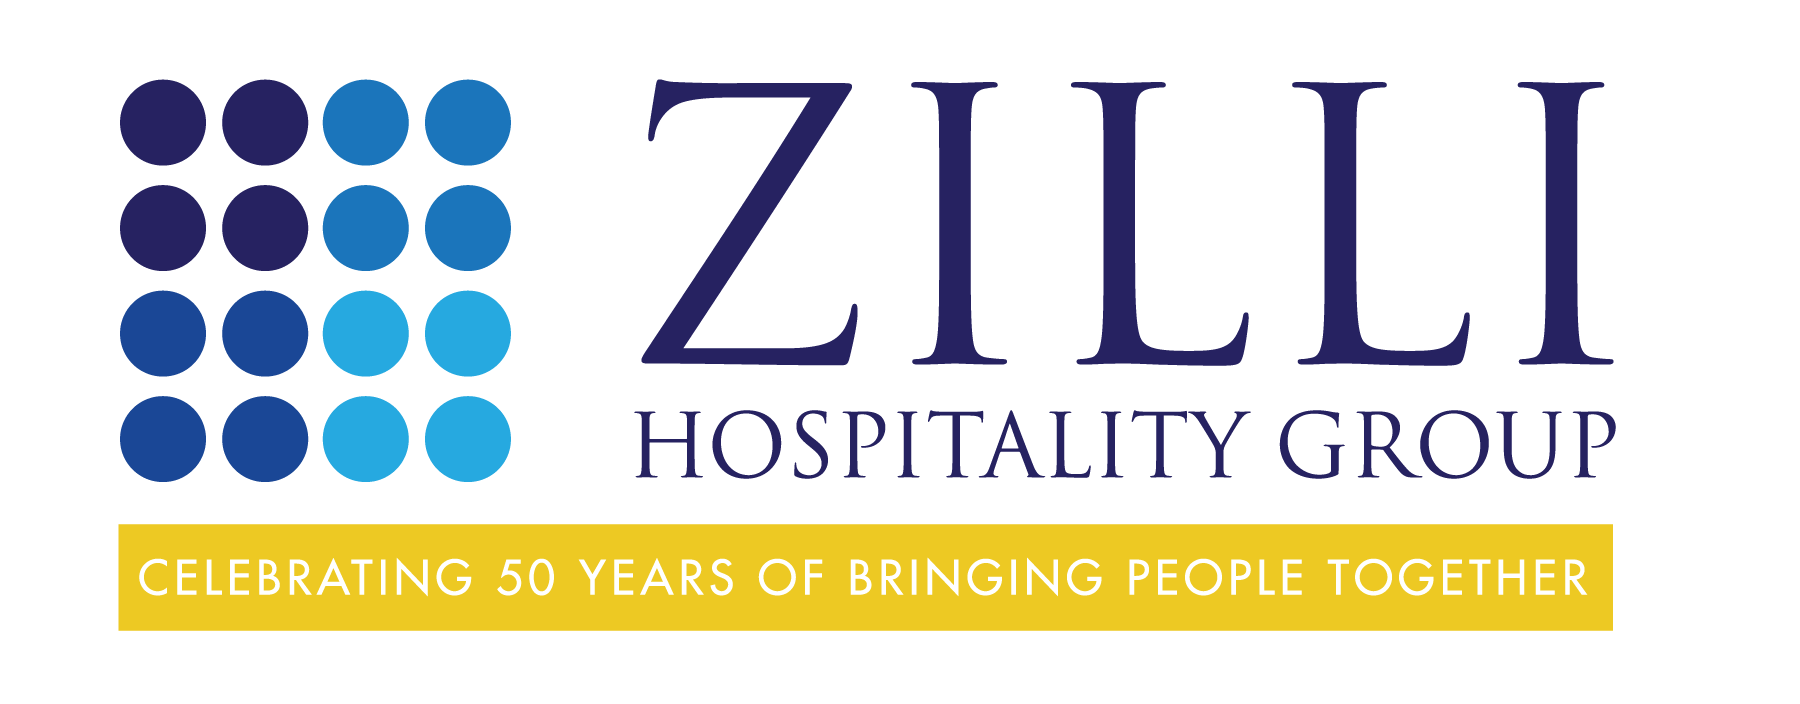 Zilli Hospitality Group - 50th Anniversary Logo